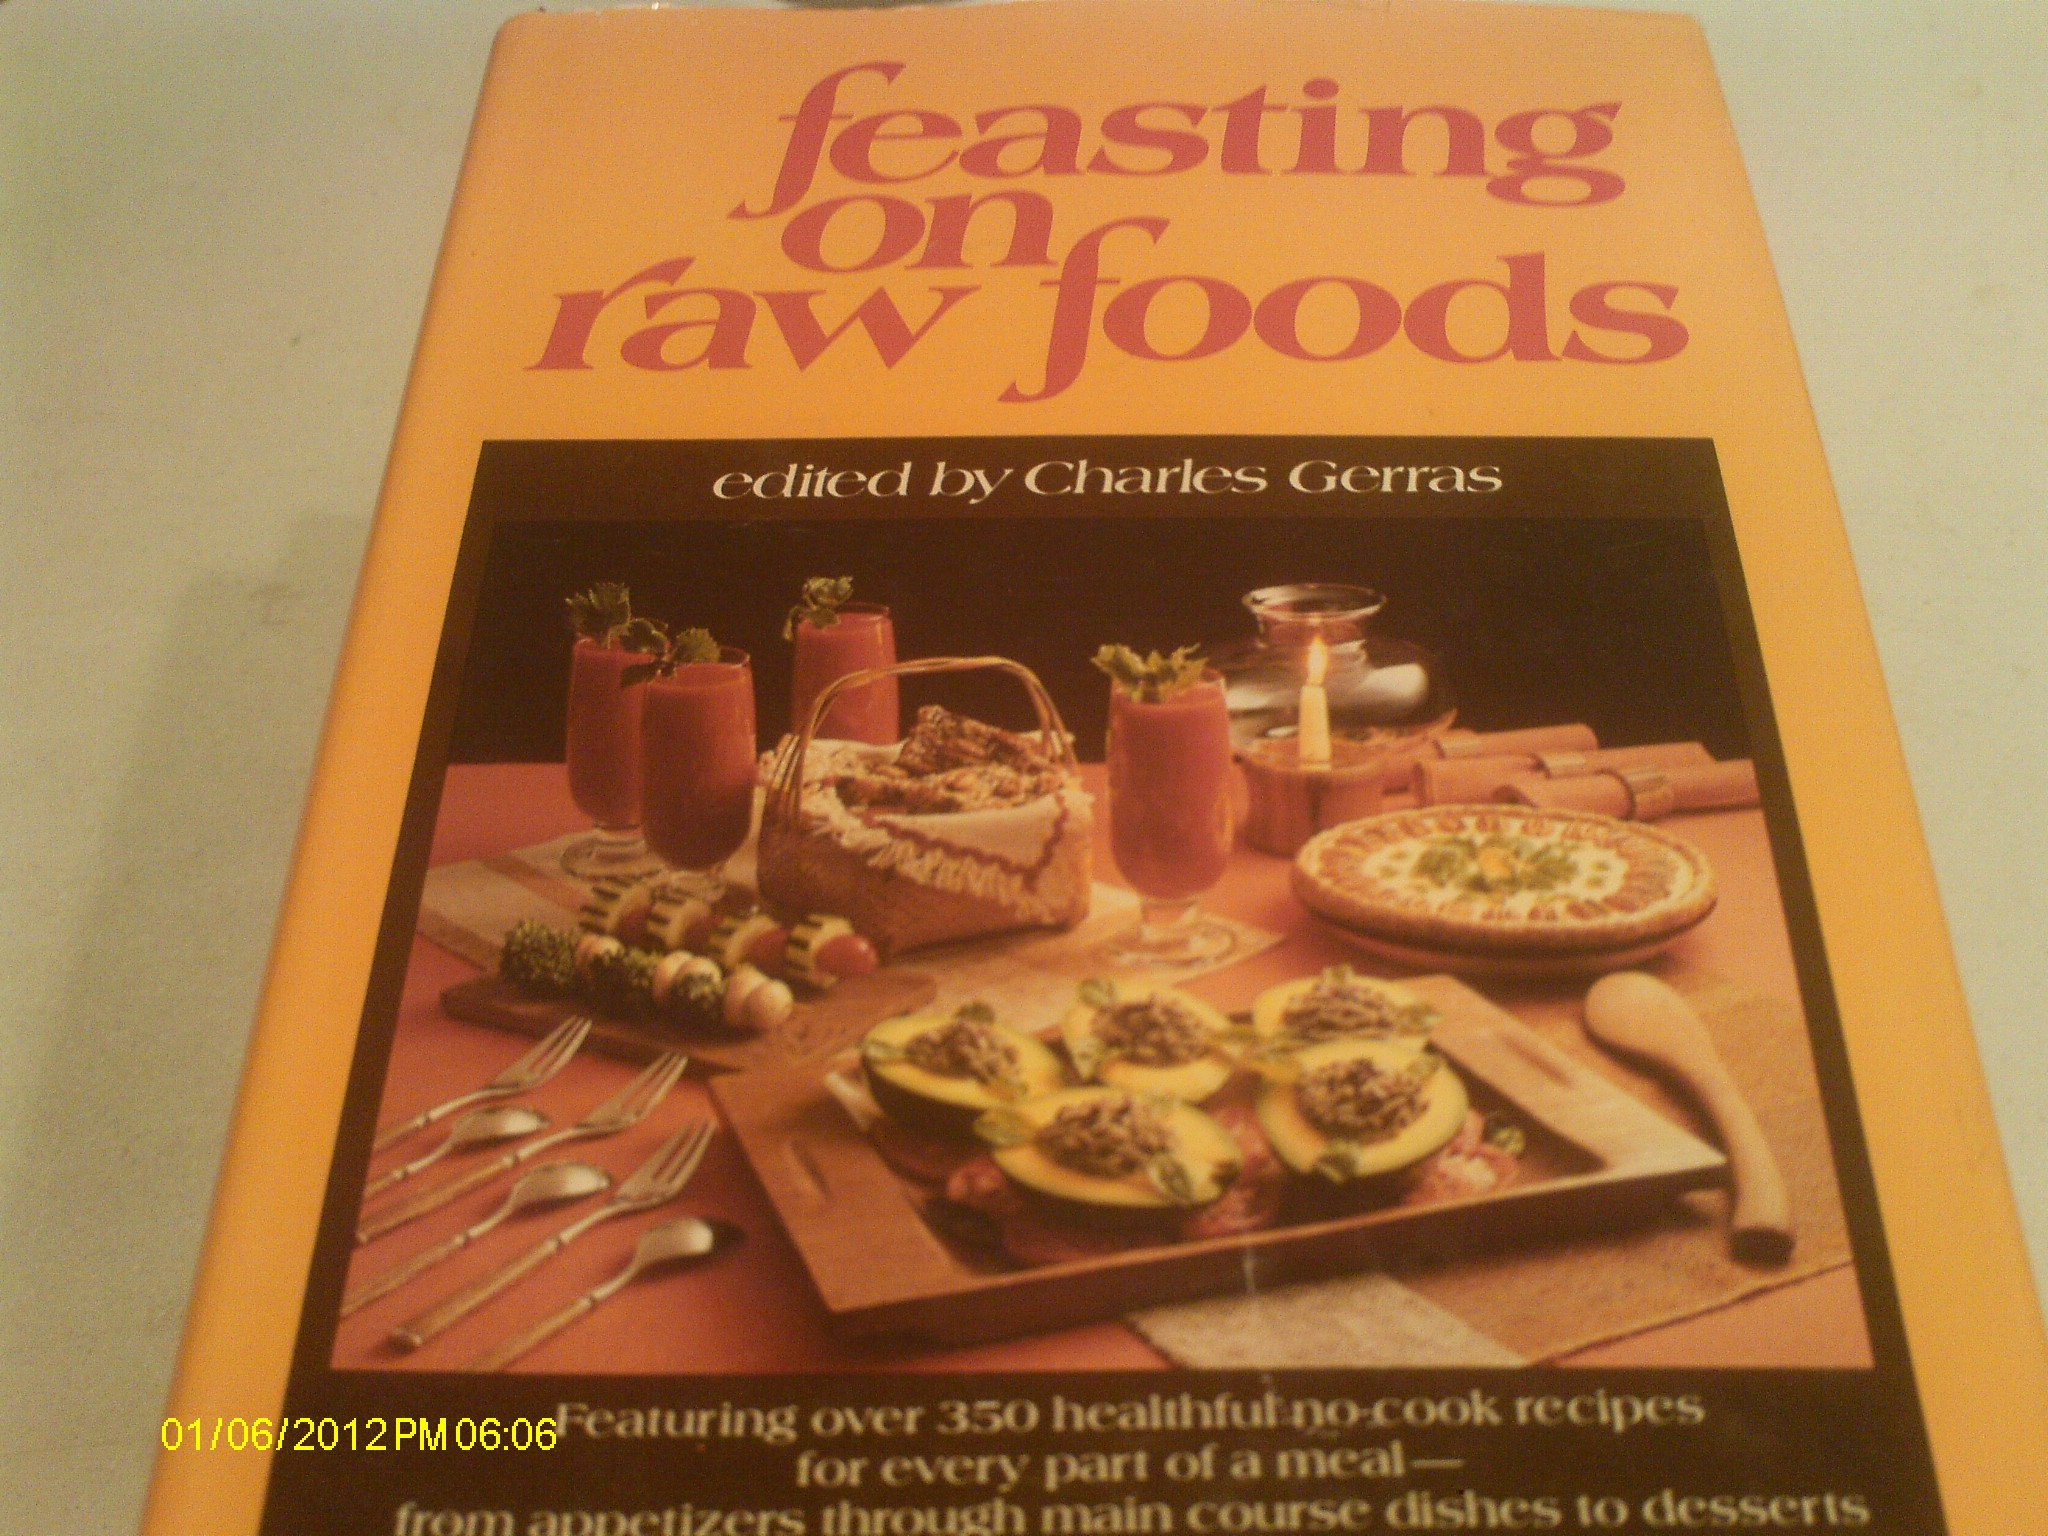 Feasting on Raw Foods: Featuring Over 350 Healthful No-Cook Recipes for Every Part of a Meal